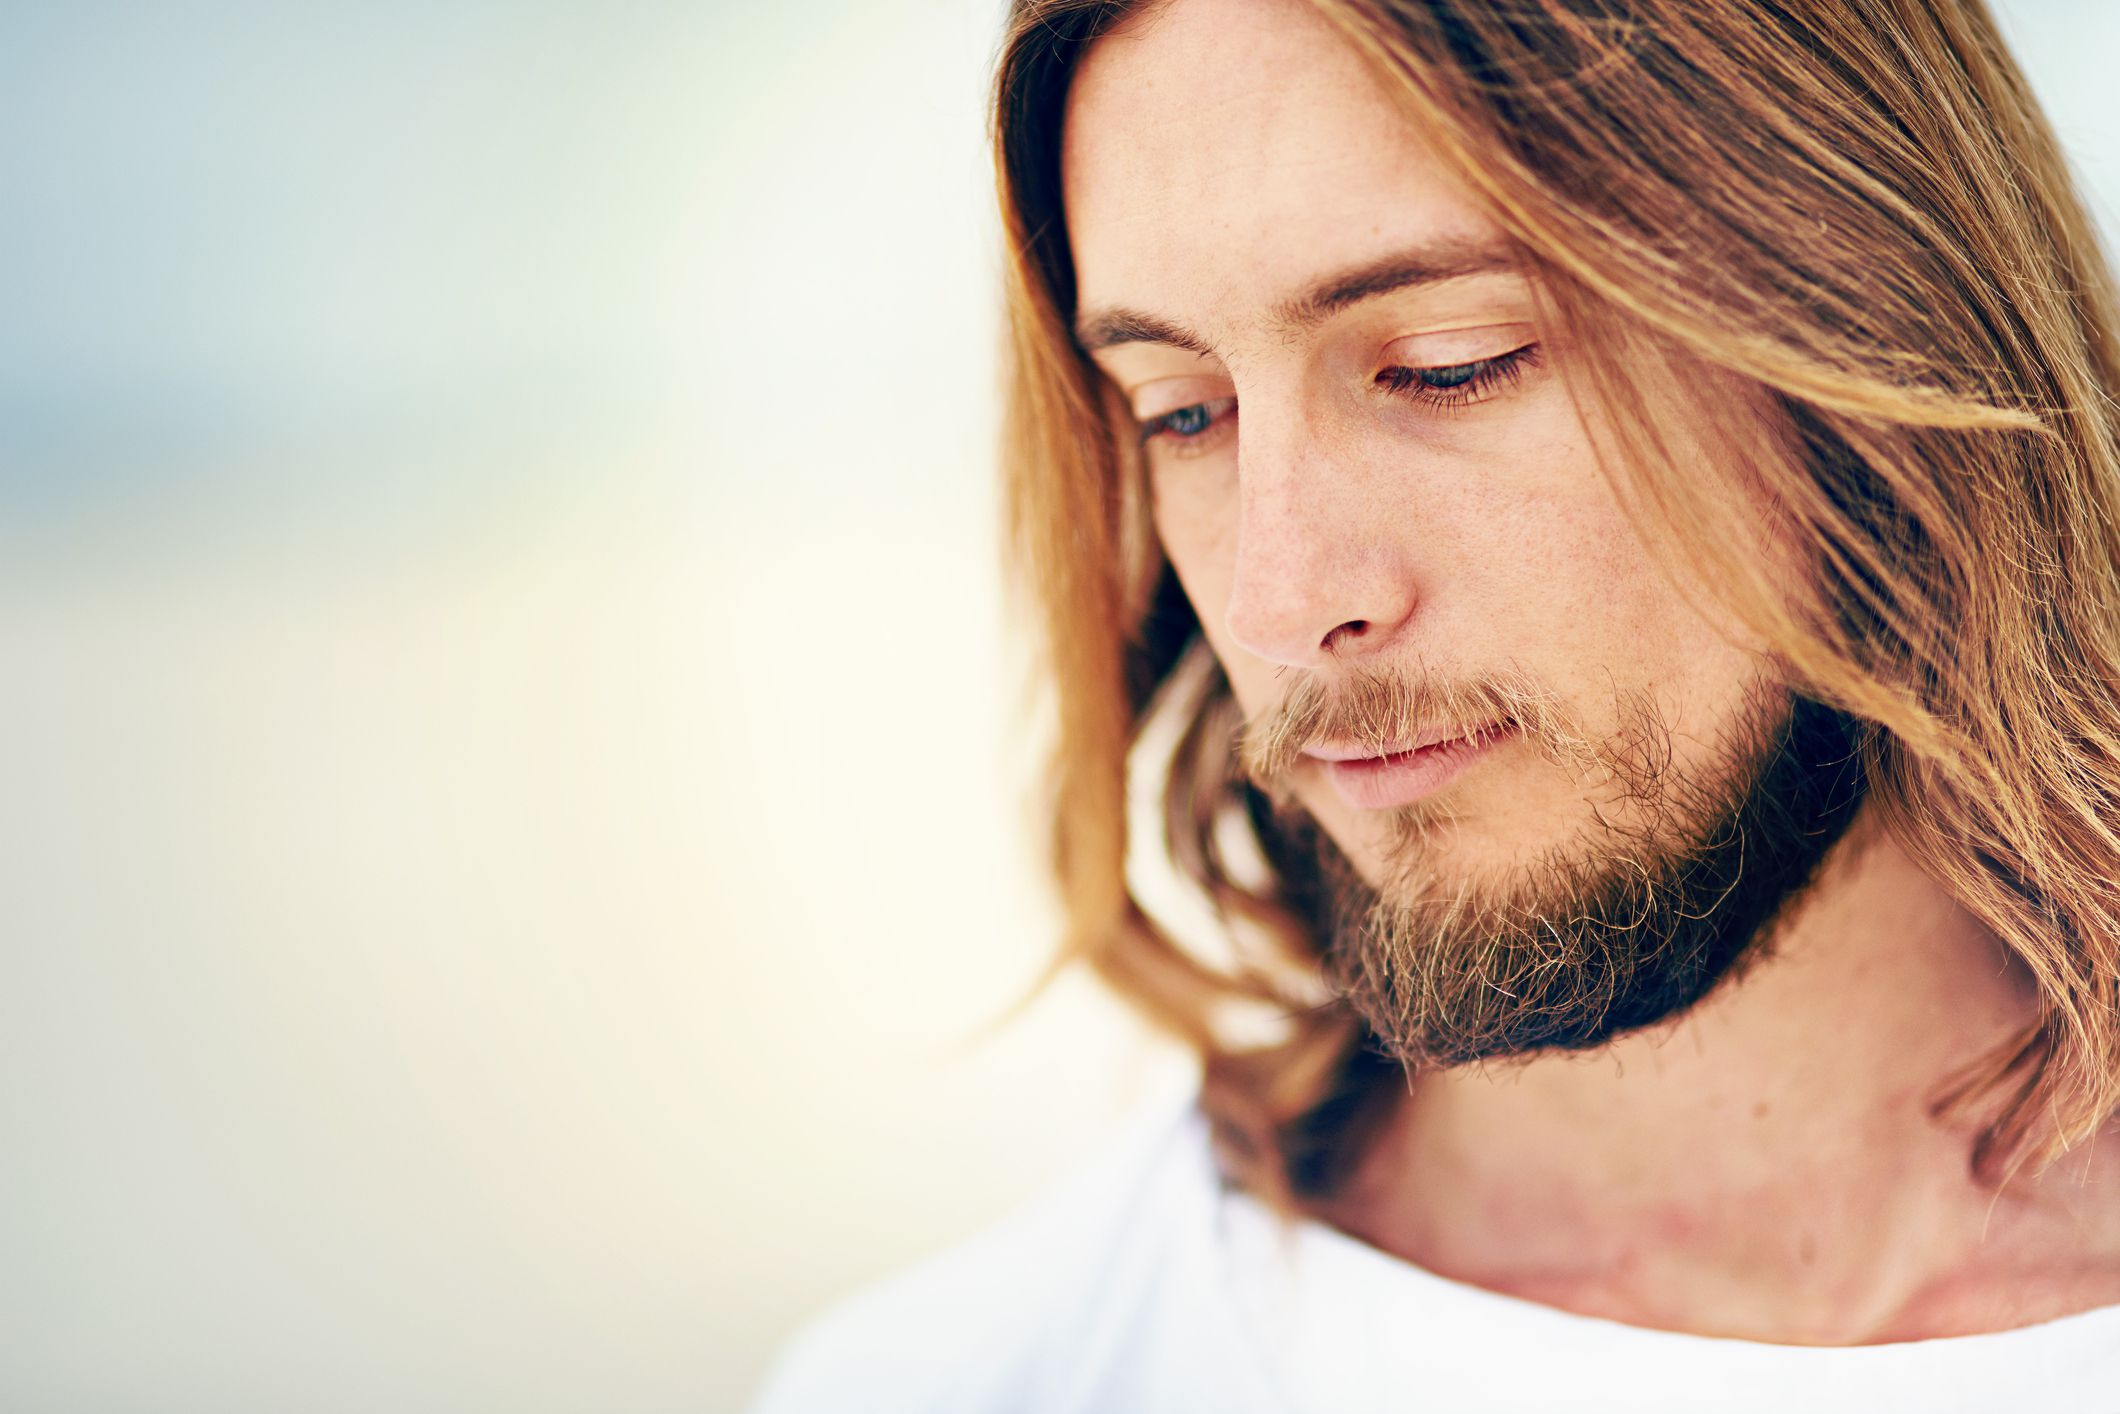 7 facts about jesus you probably did not know